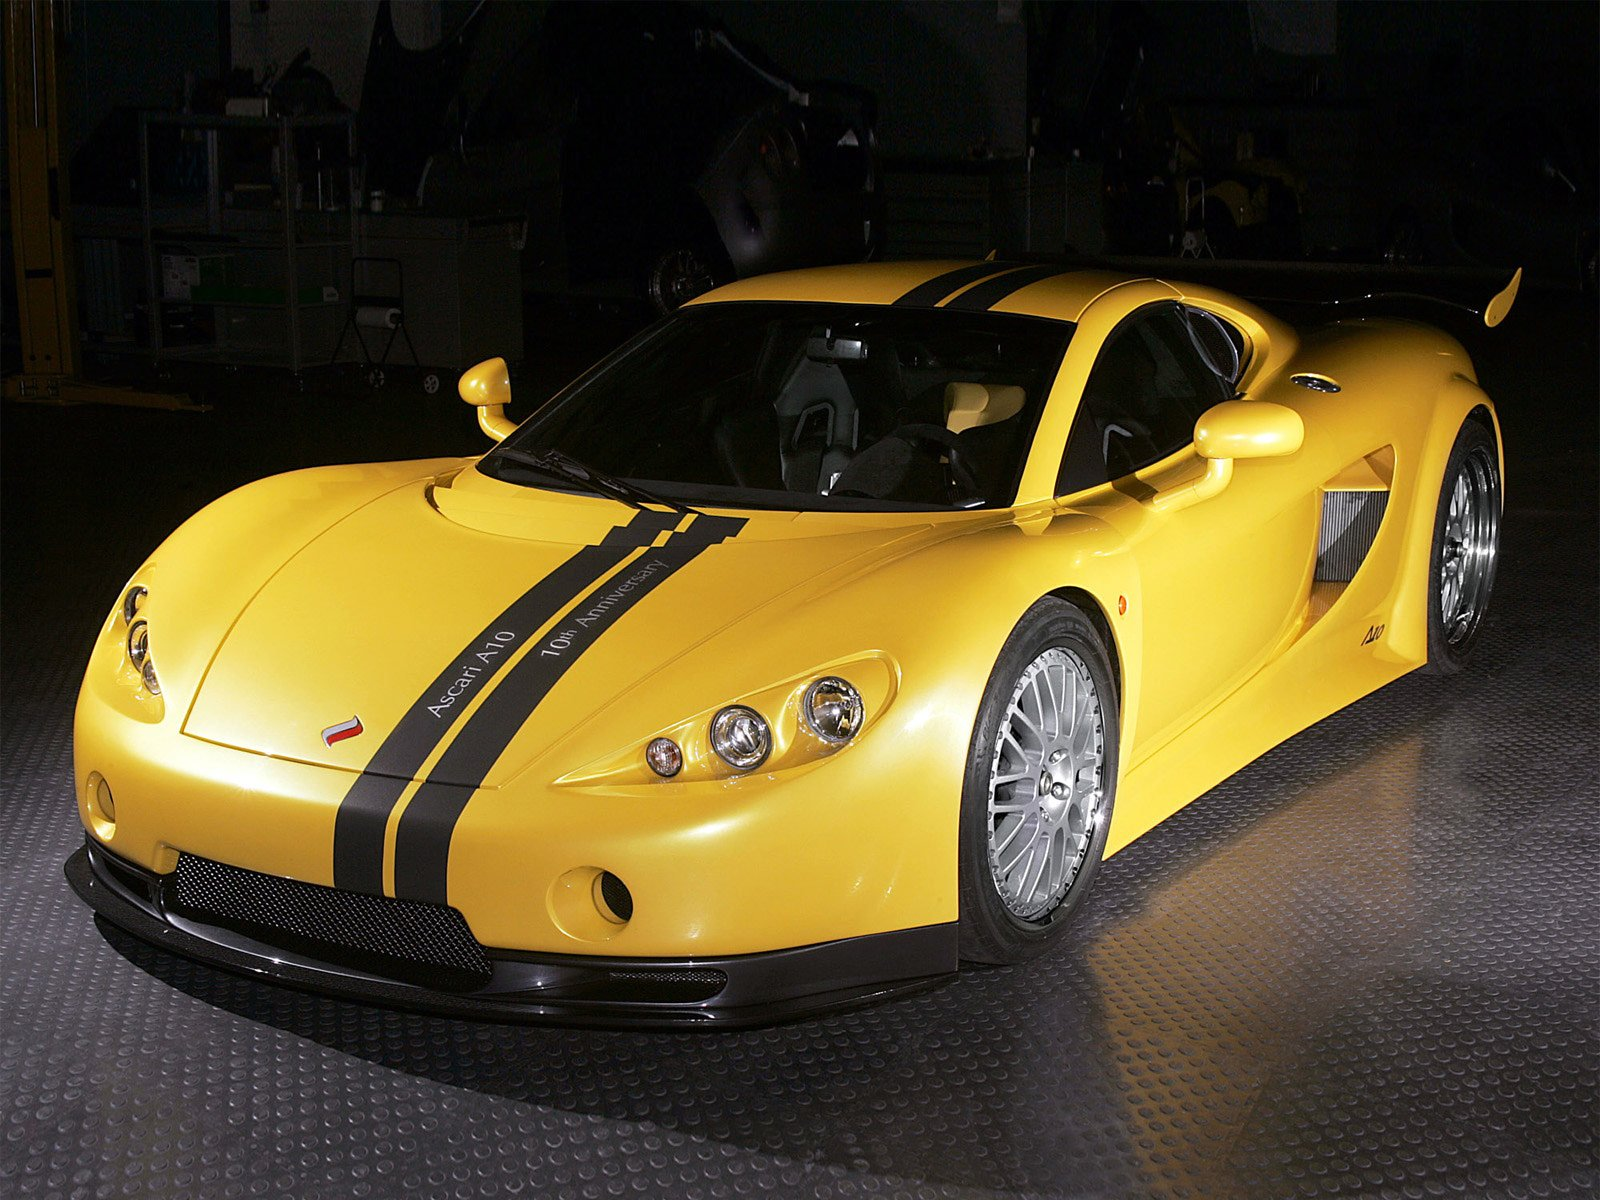 New 2007 Ascari A10 Car Desktop Wallpaper Accident Lawyers On This Month